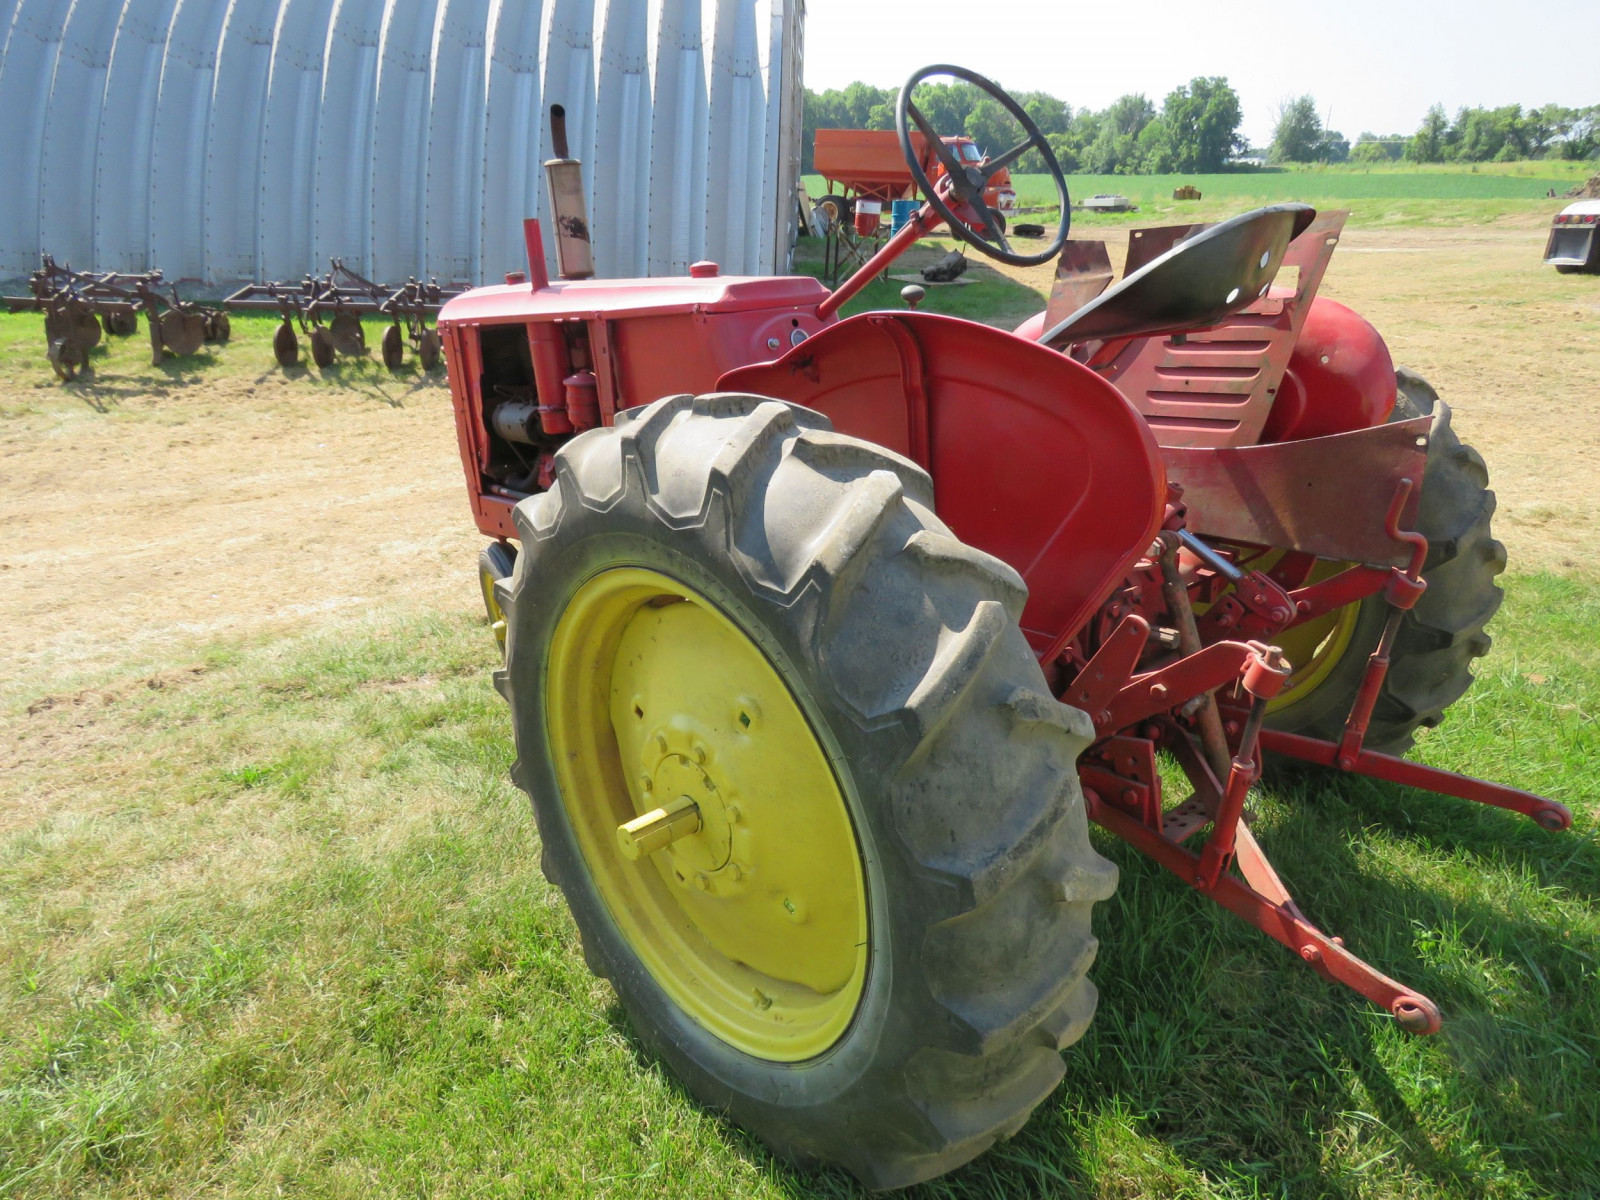 Massey Harris Row Crop 81 Tractor - Image 5